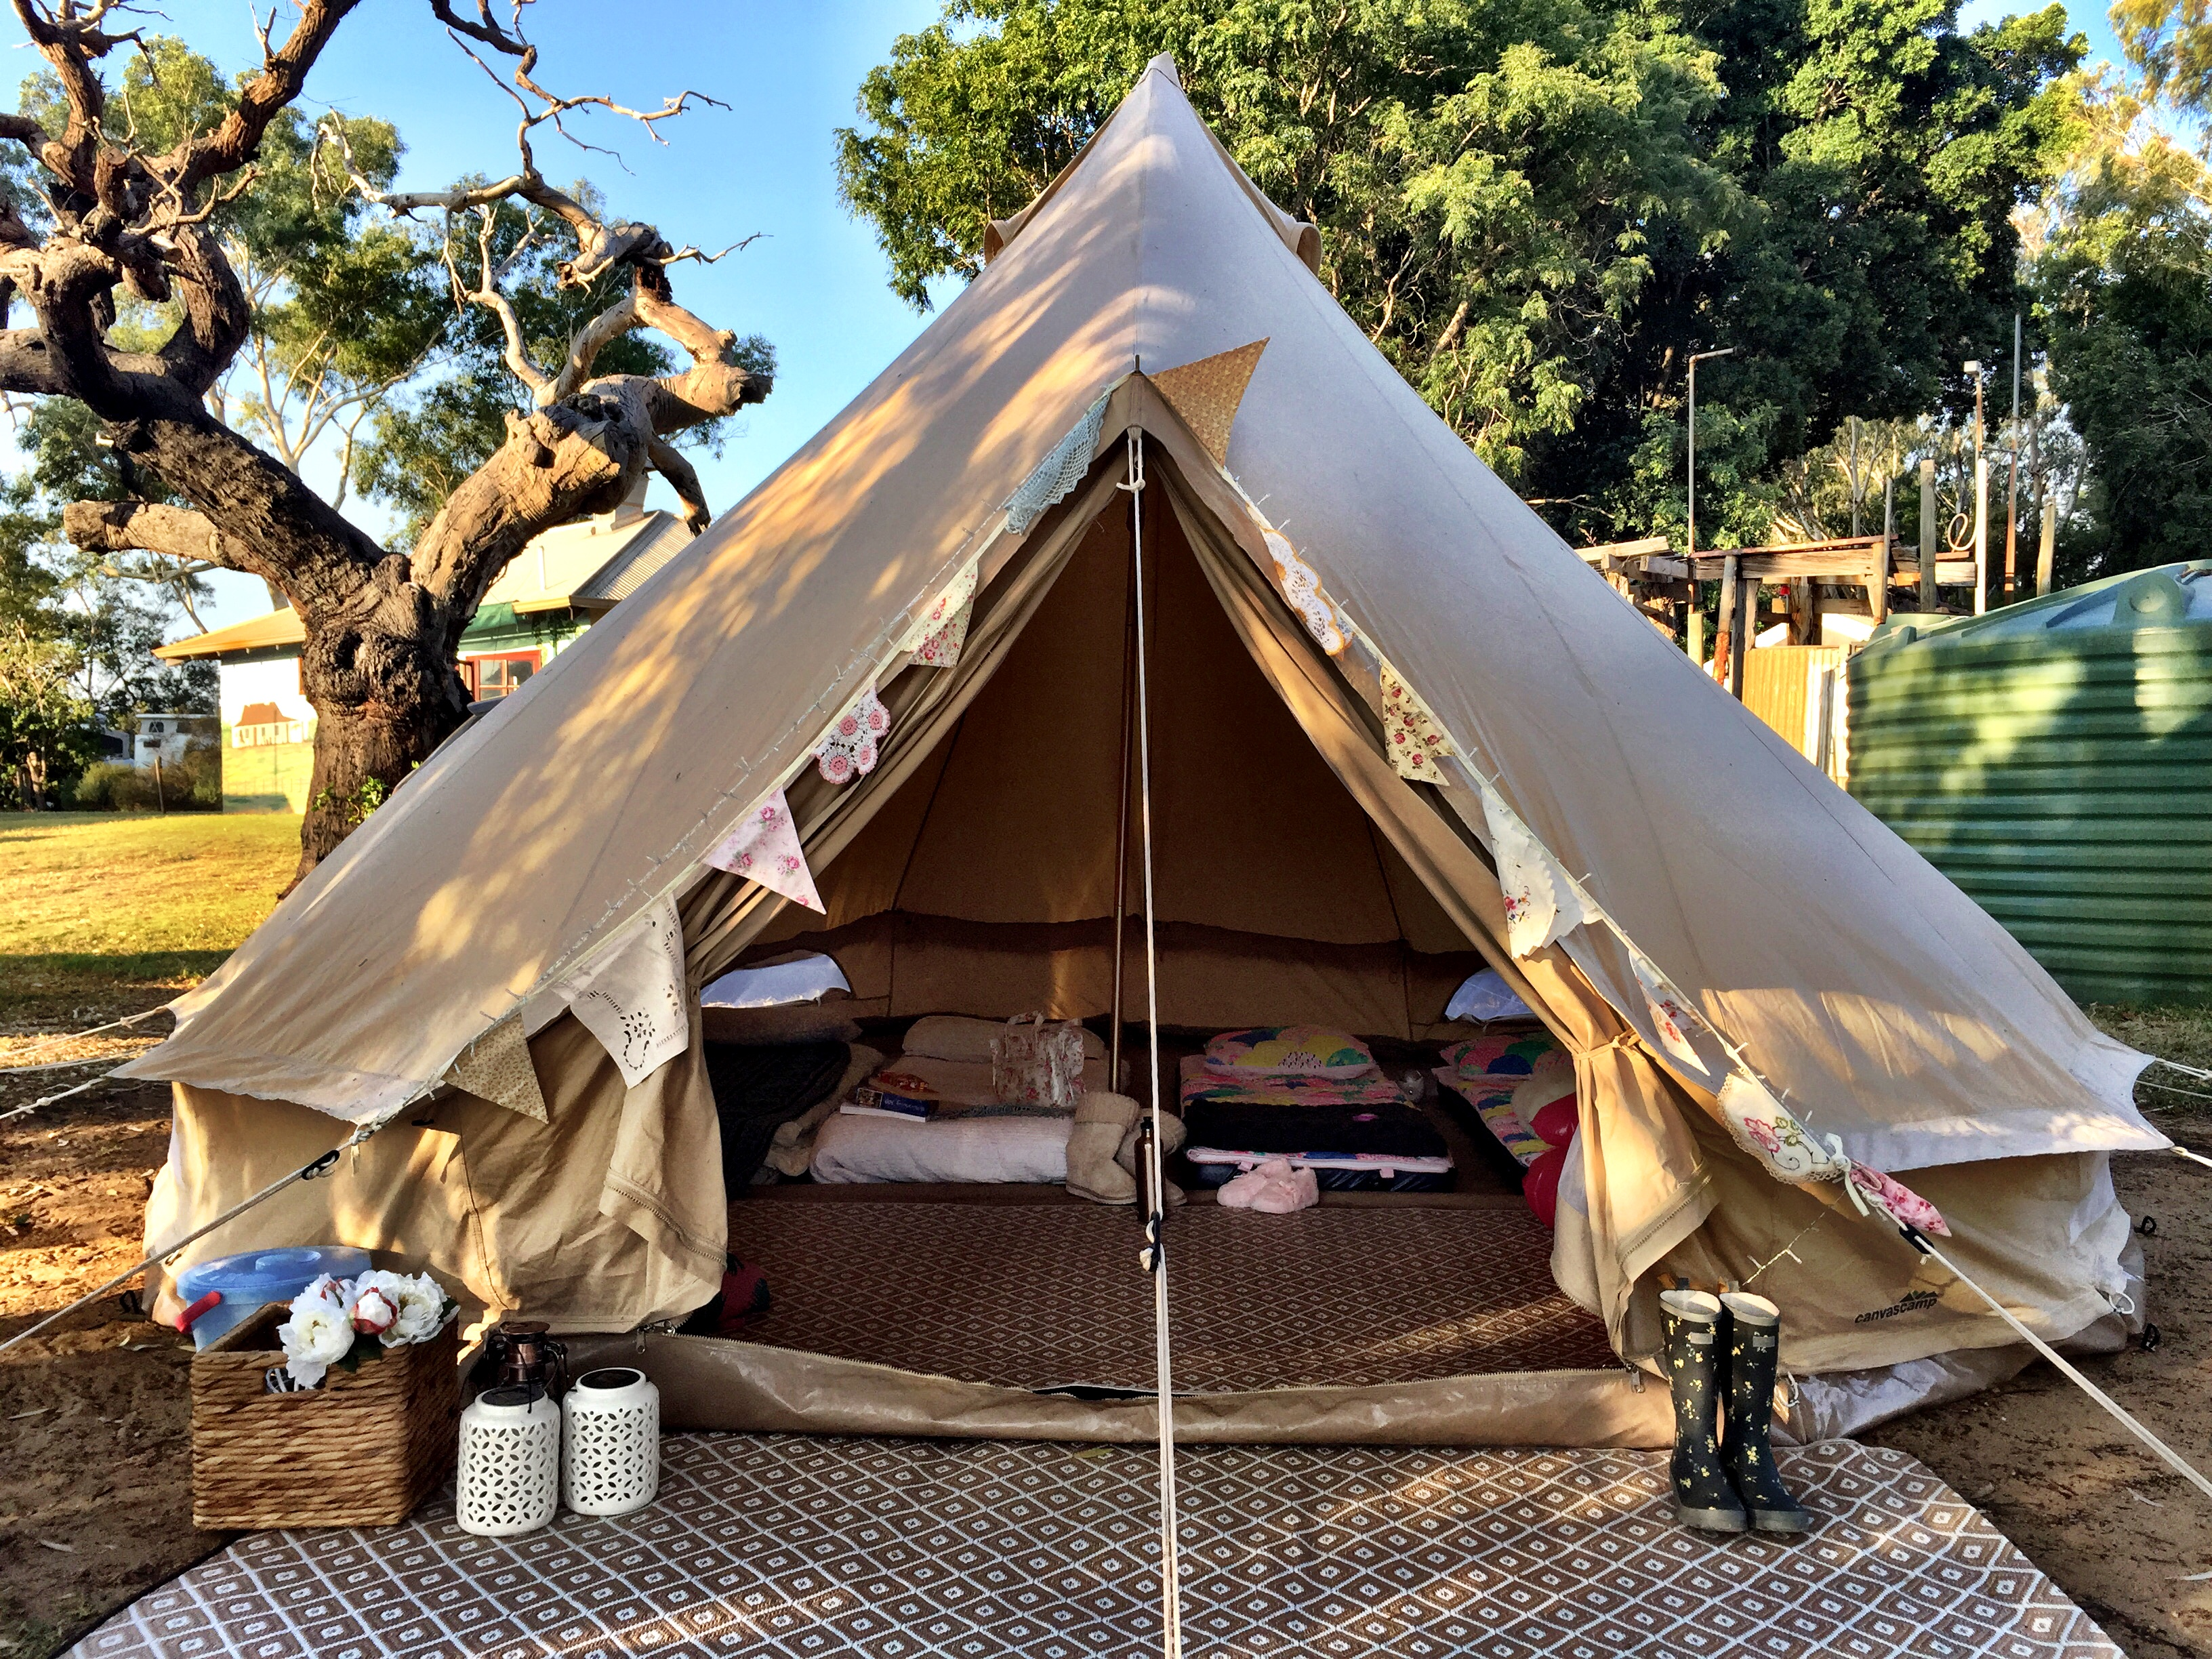 gl&ing perth & Glamping. Glamorous Camping Under The Little Top